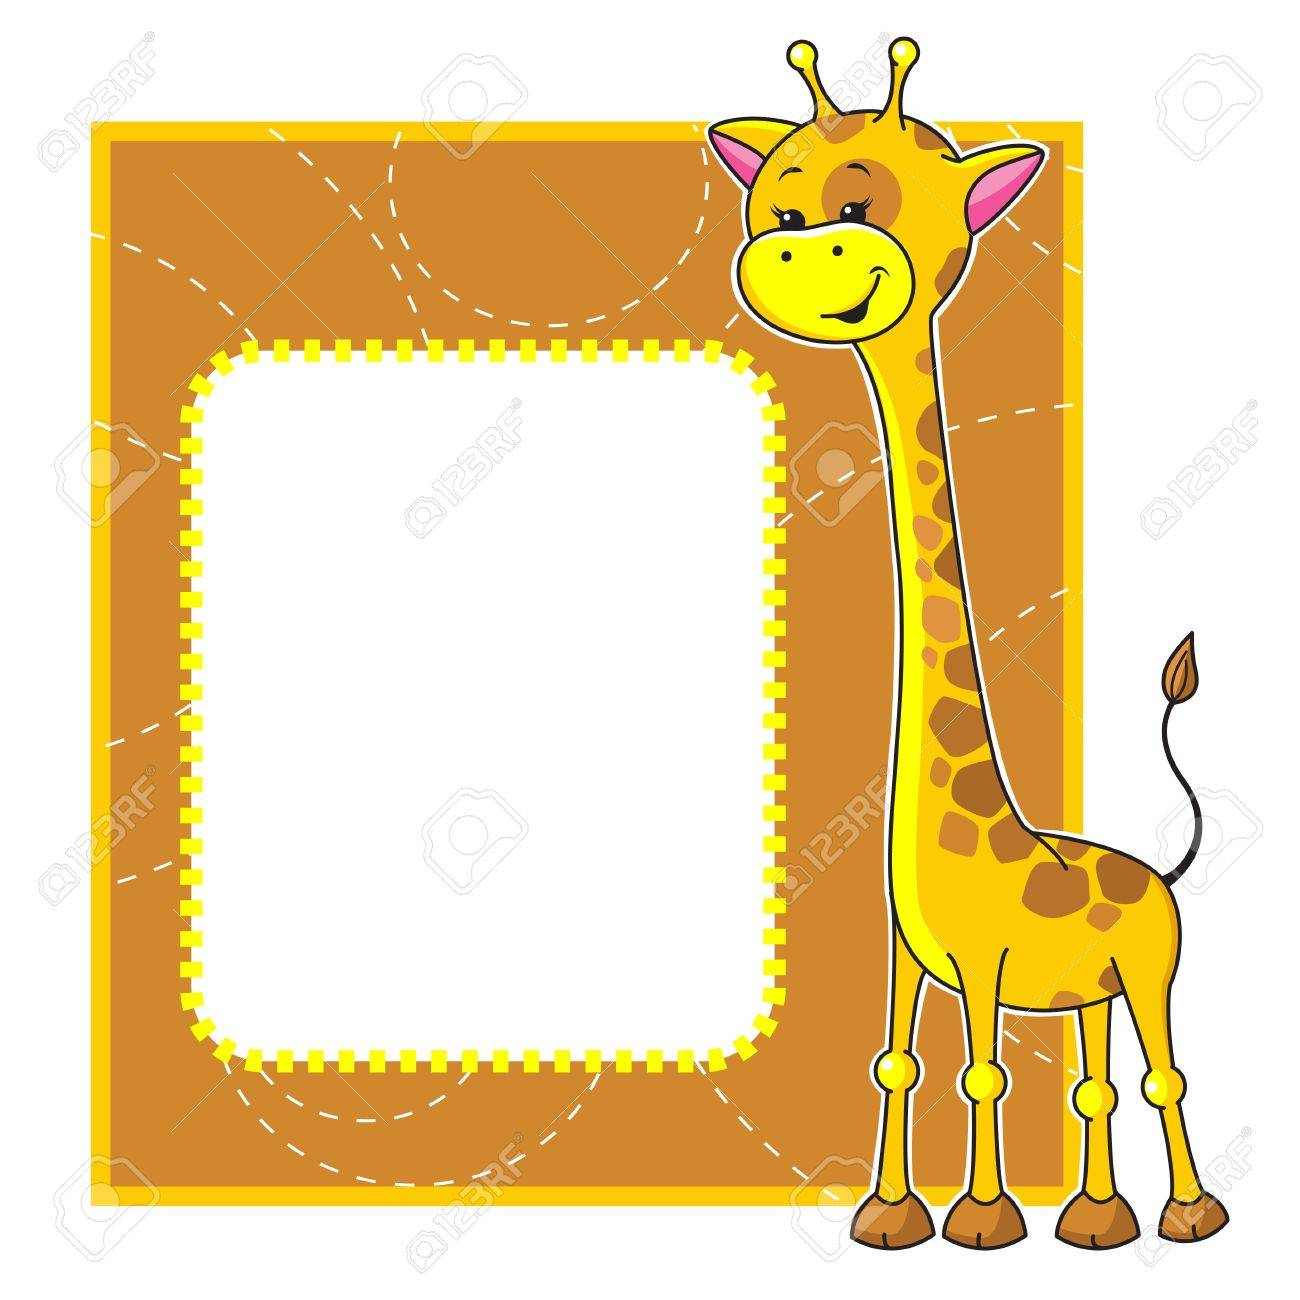 Cute Cartoon Frame With Little Giraffe Royalty Free Cliparts ...